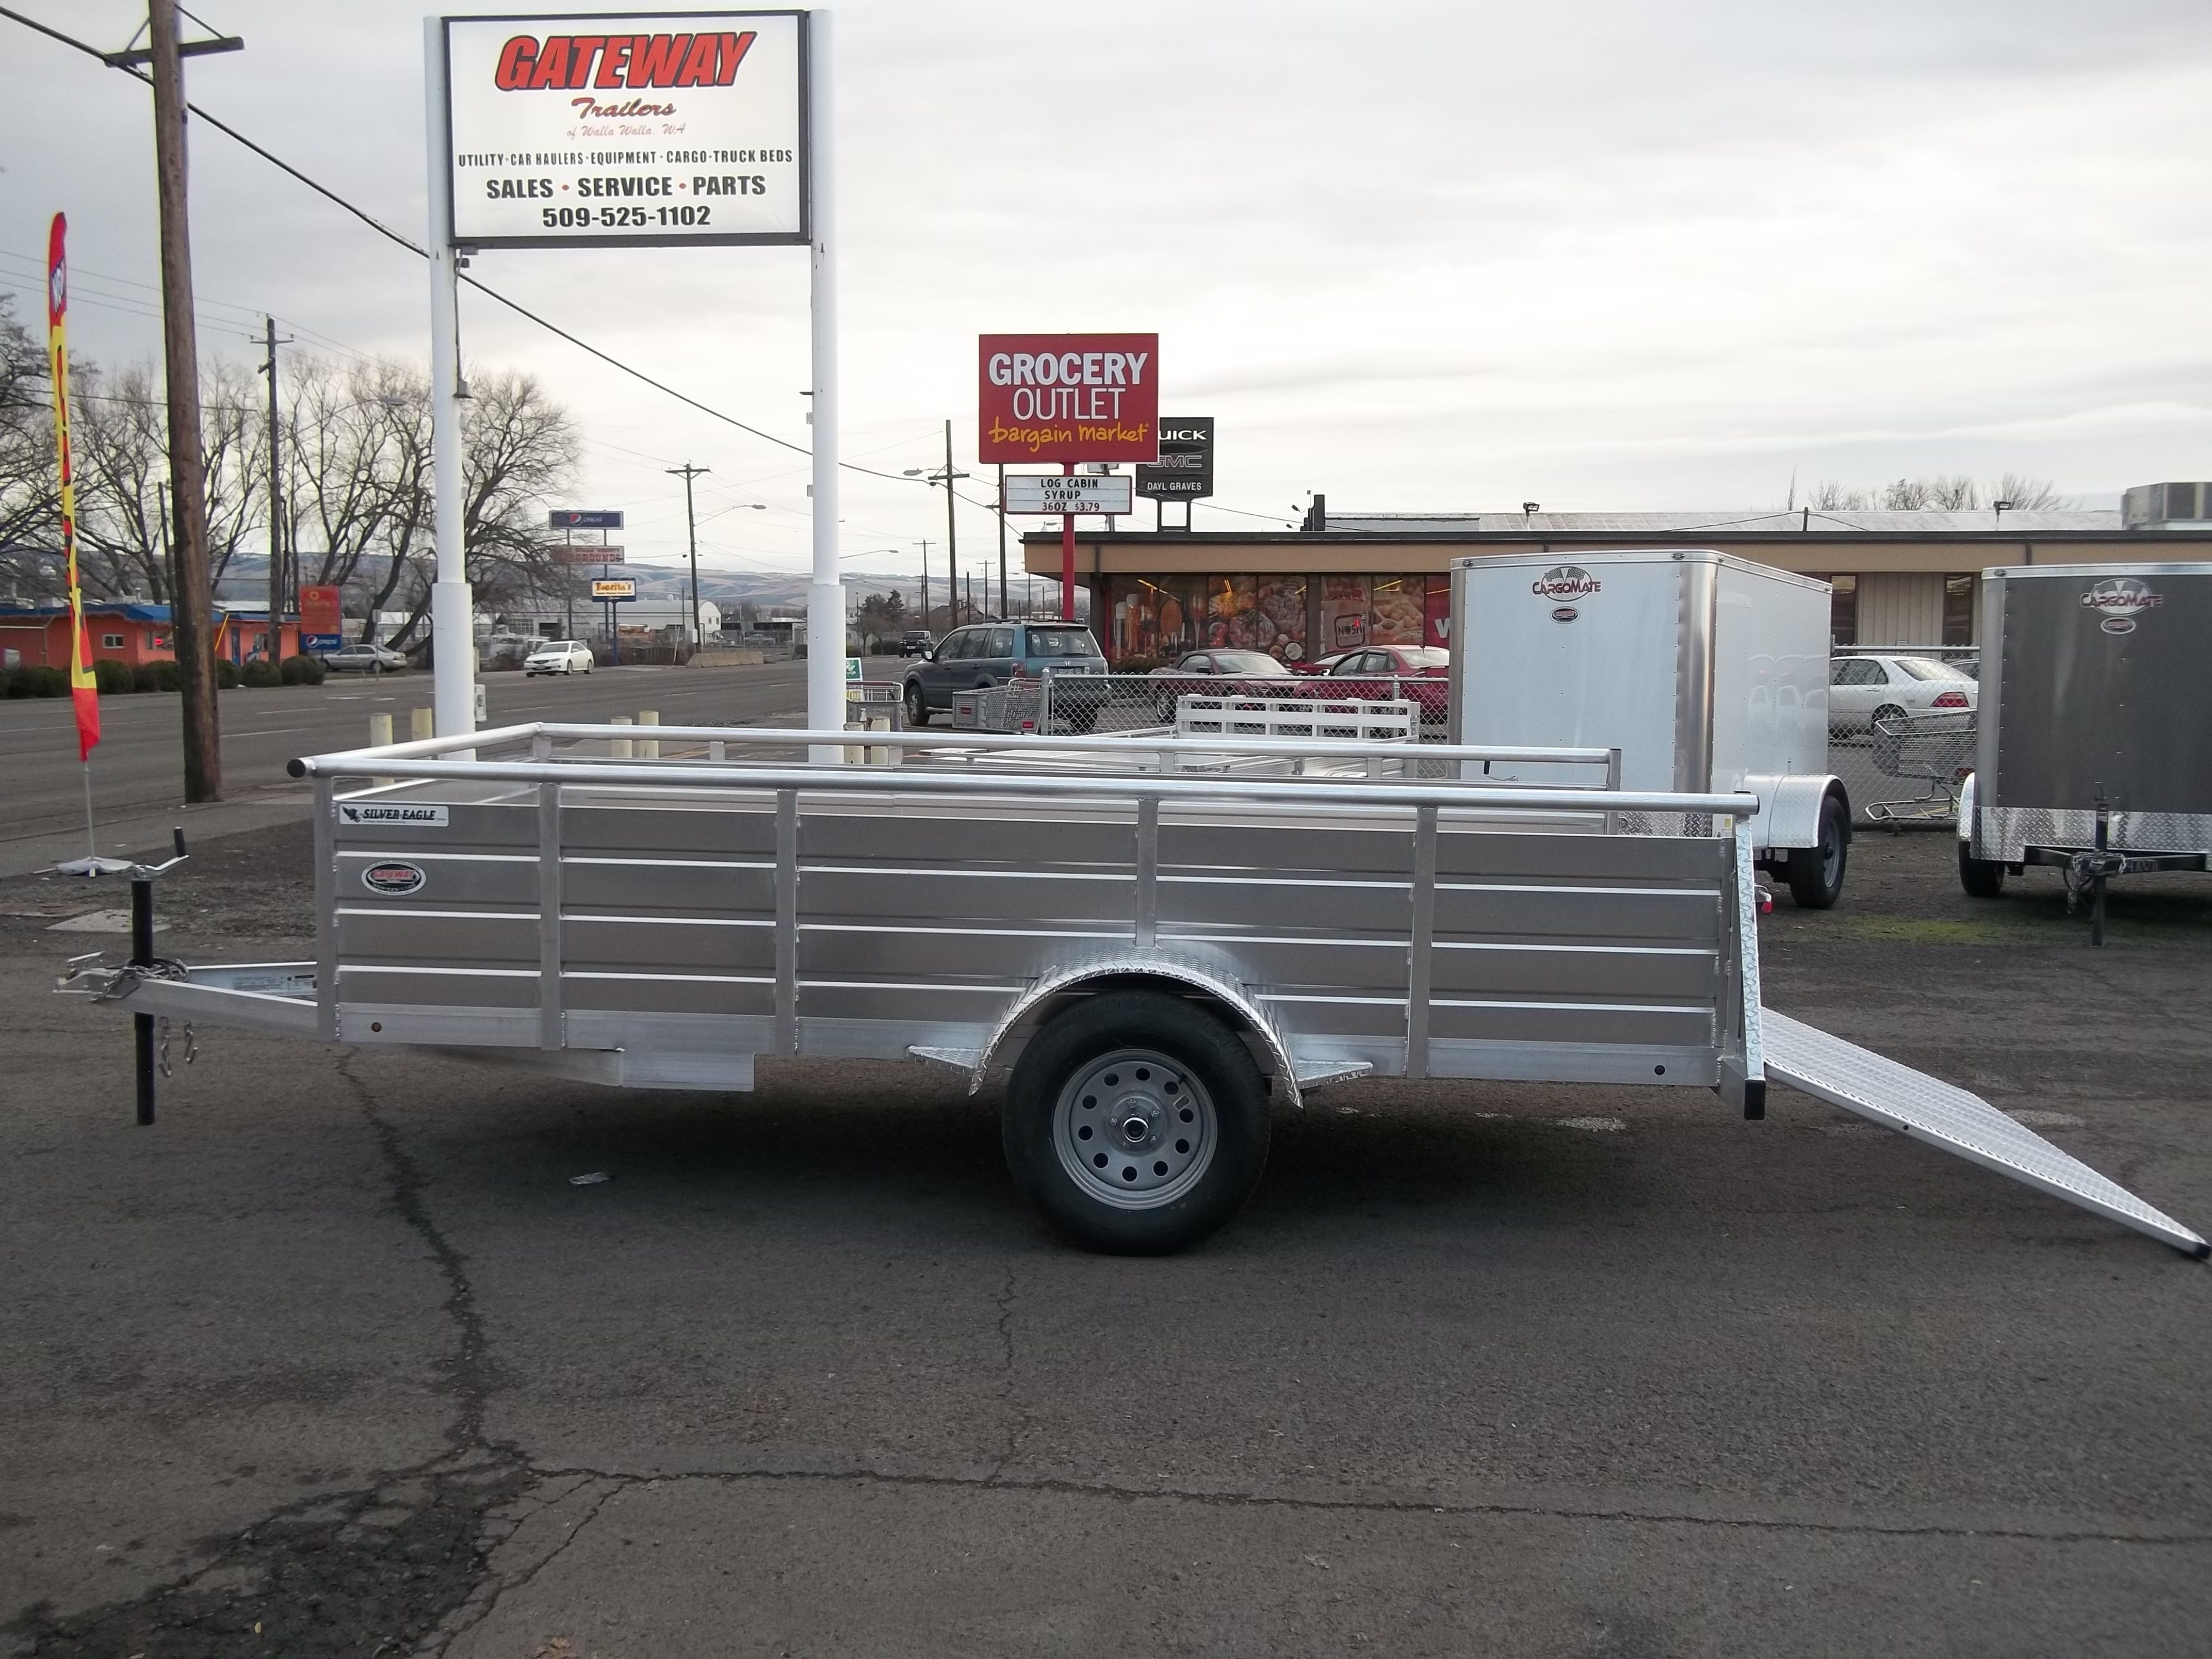 2018 Eagle 6.5\'x 12′ ATV Trailer – Gateway Trailers of Walla Walla